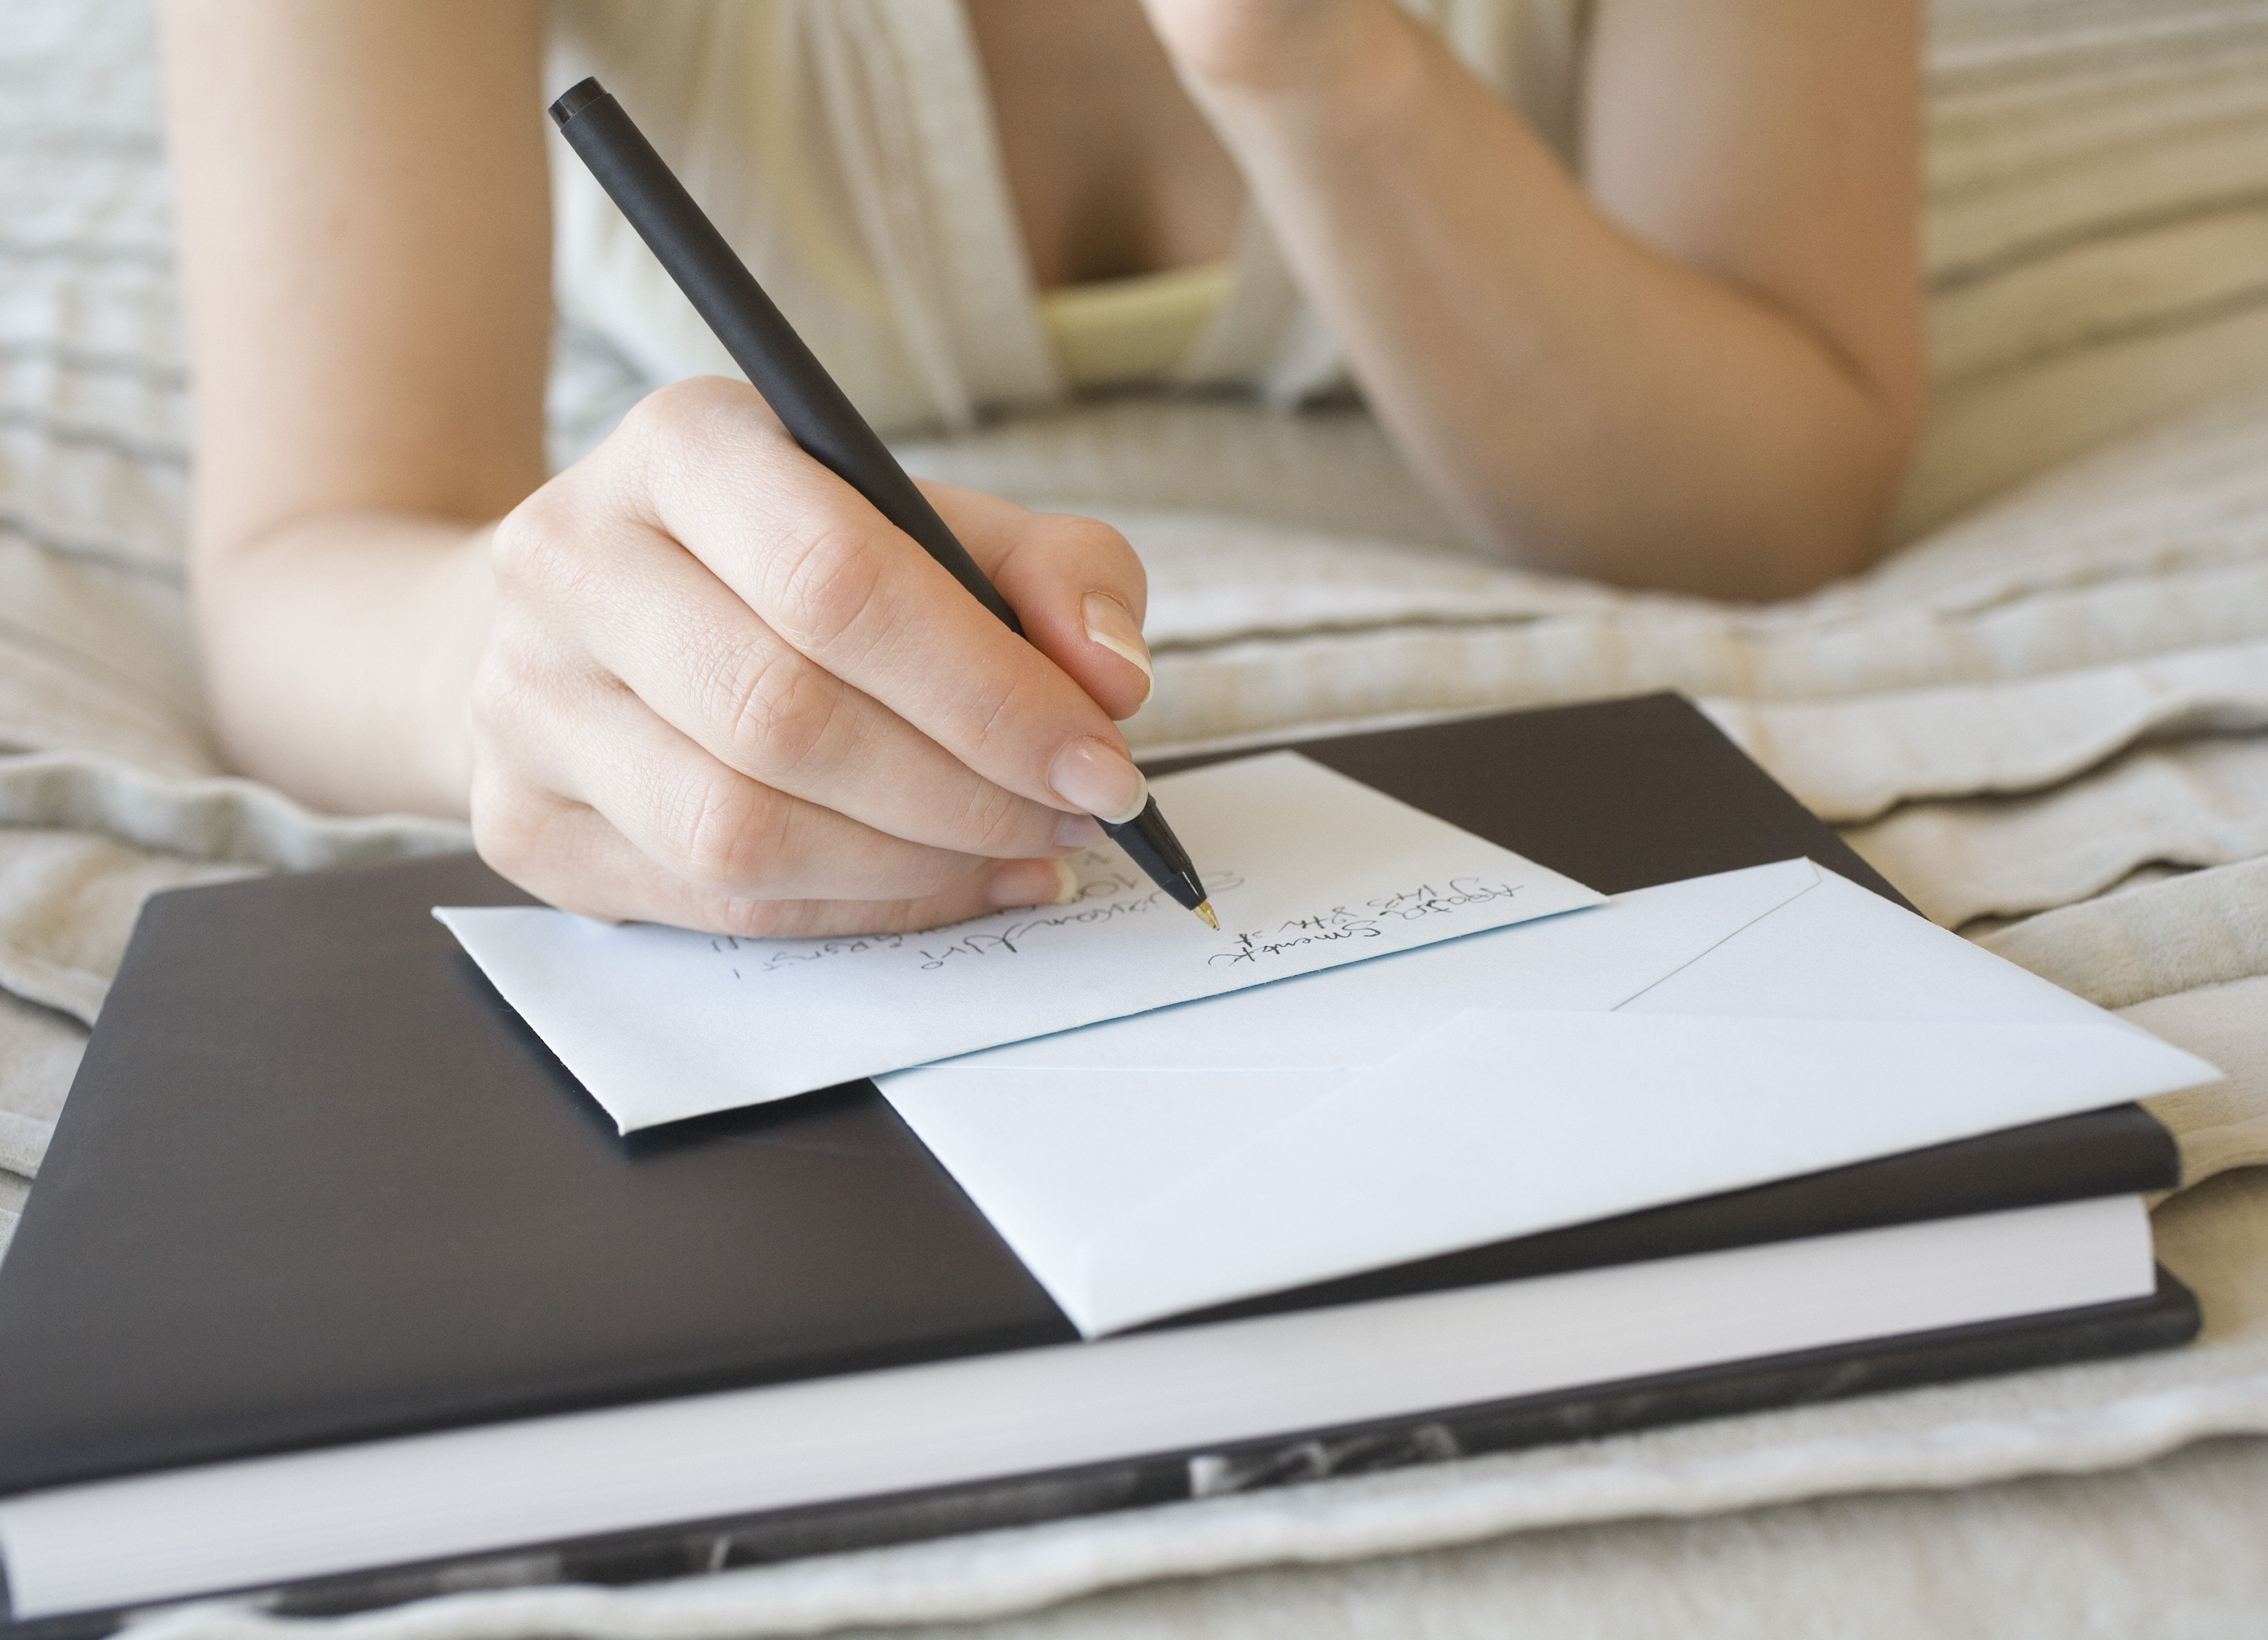 Woman writing on stationery